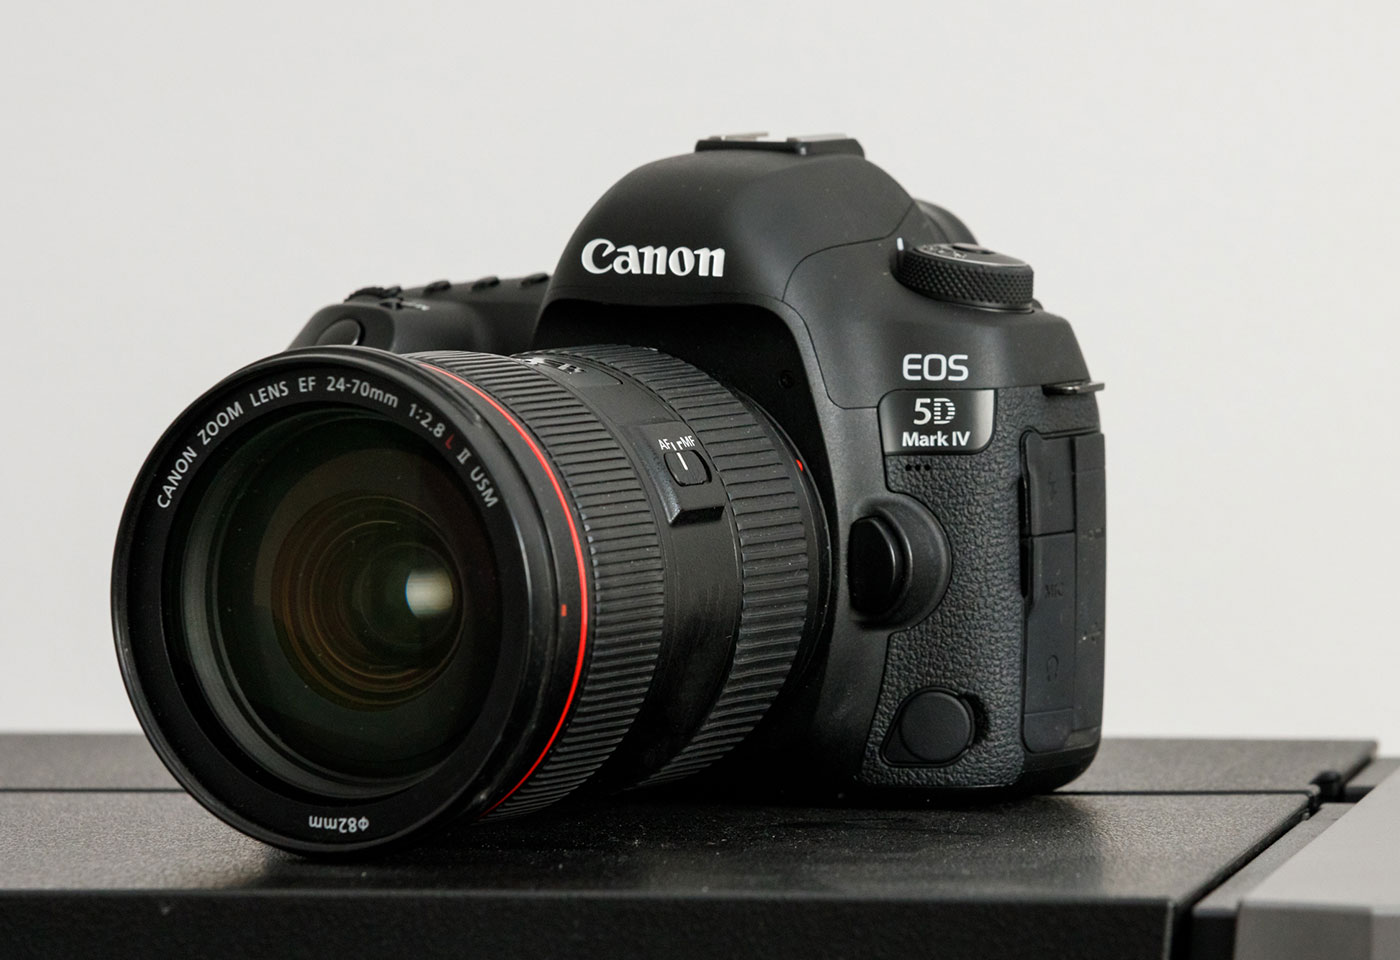 EOS 5D Mark IV Get to know your camera